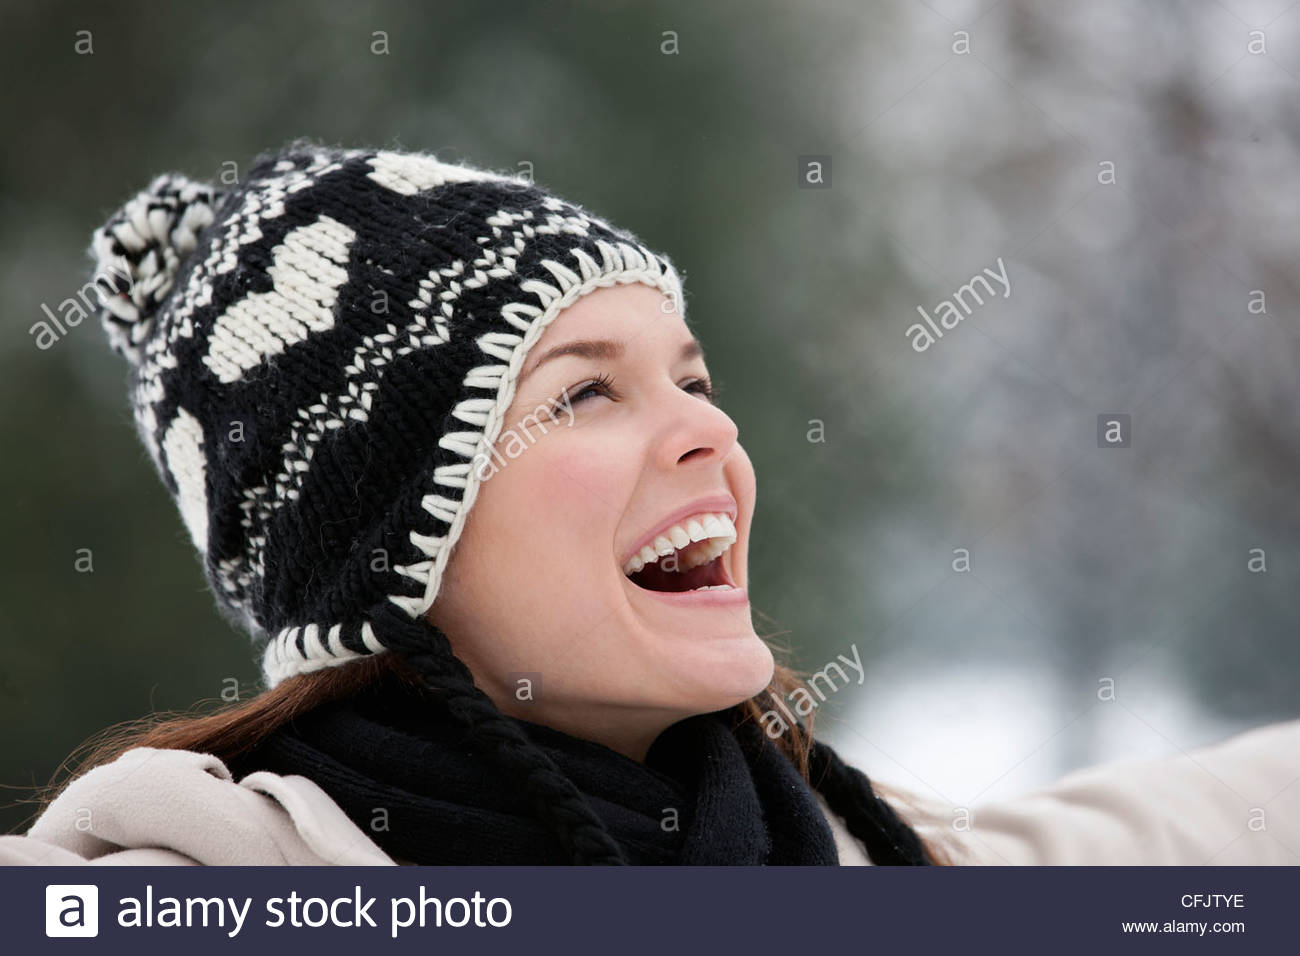 A young woman wearing a woolen hat, enjoying the open air - Stock Image